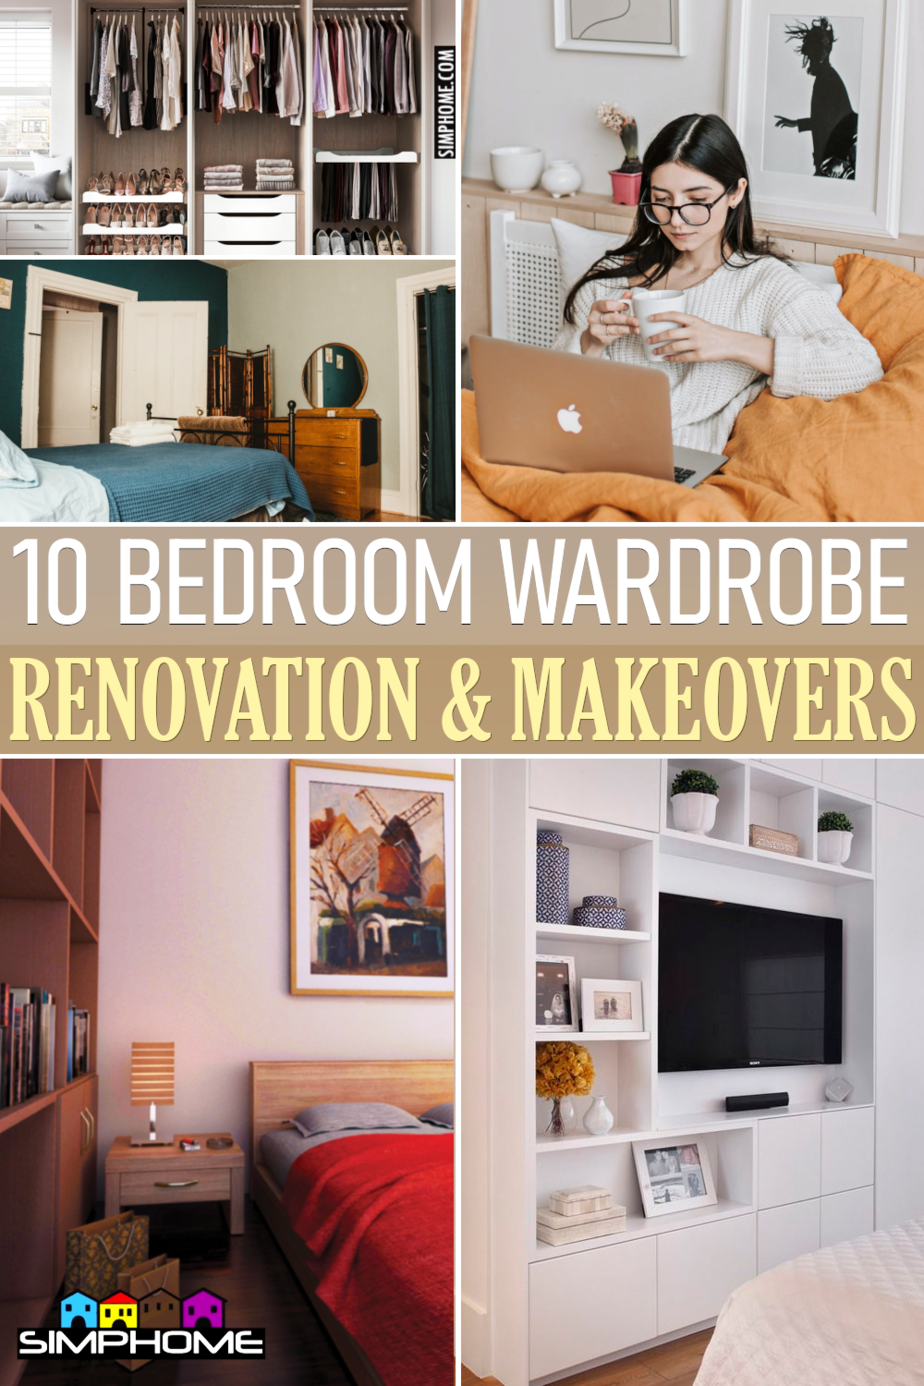 10 Bedroom Wardrobe Renovation ideas via Simphome.comFeatured